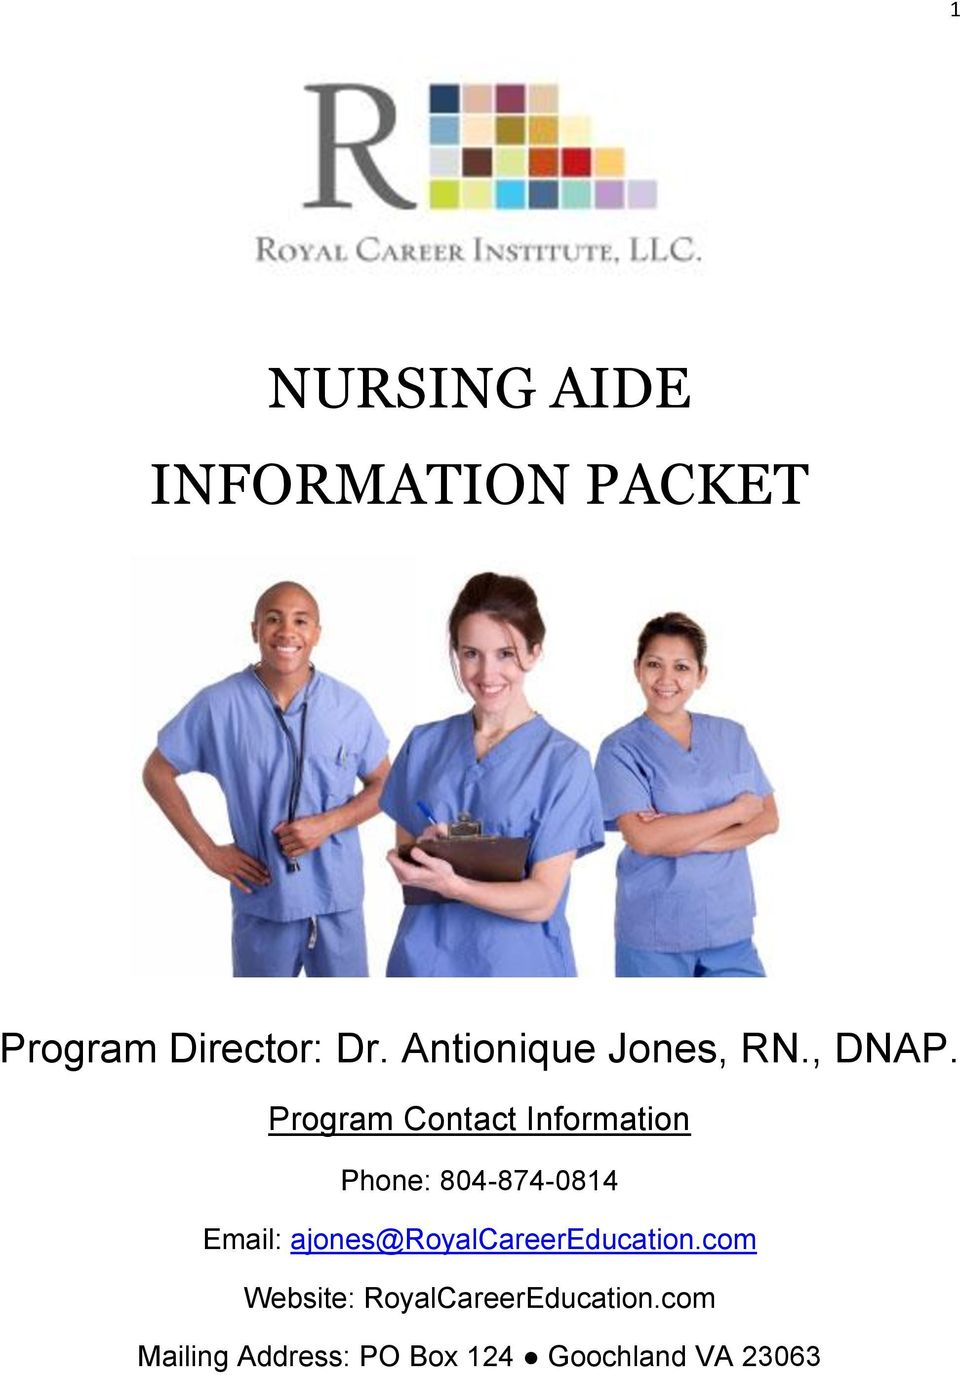 Program Contact Information Phone: 804-874-0814 Email: